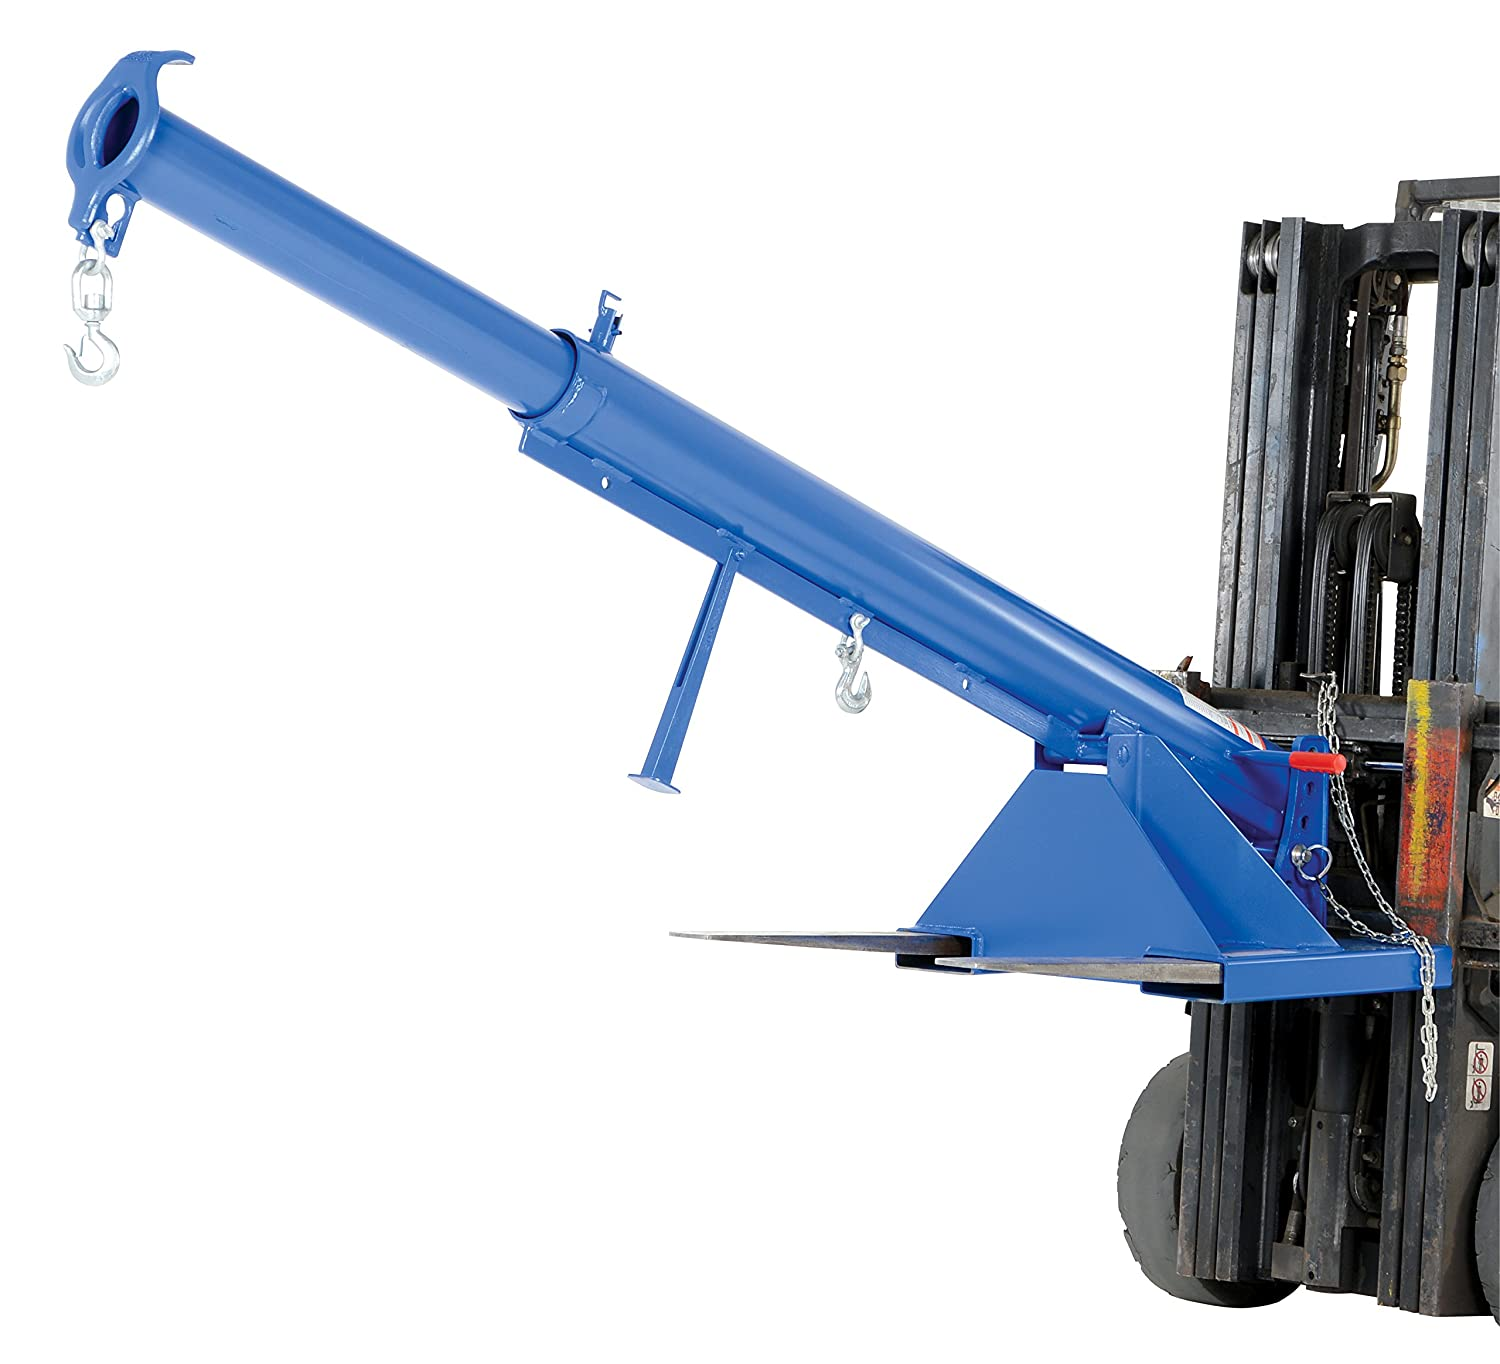 Vestil Lm Obt 4 24 Orbit Telescoping Lift Boom 4000 Lb Capacity 24 Fork Pocket Center Overall Lxwxh In 32 X 86 625 X 27 6875 Overall Extended Length In 146 5 8 Blue Amazon Com Industrial Scientific